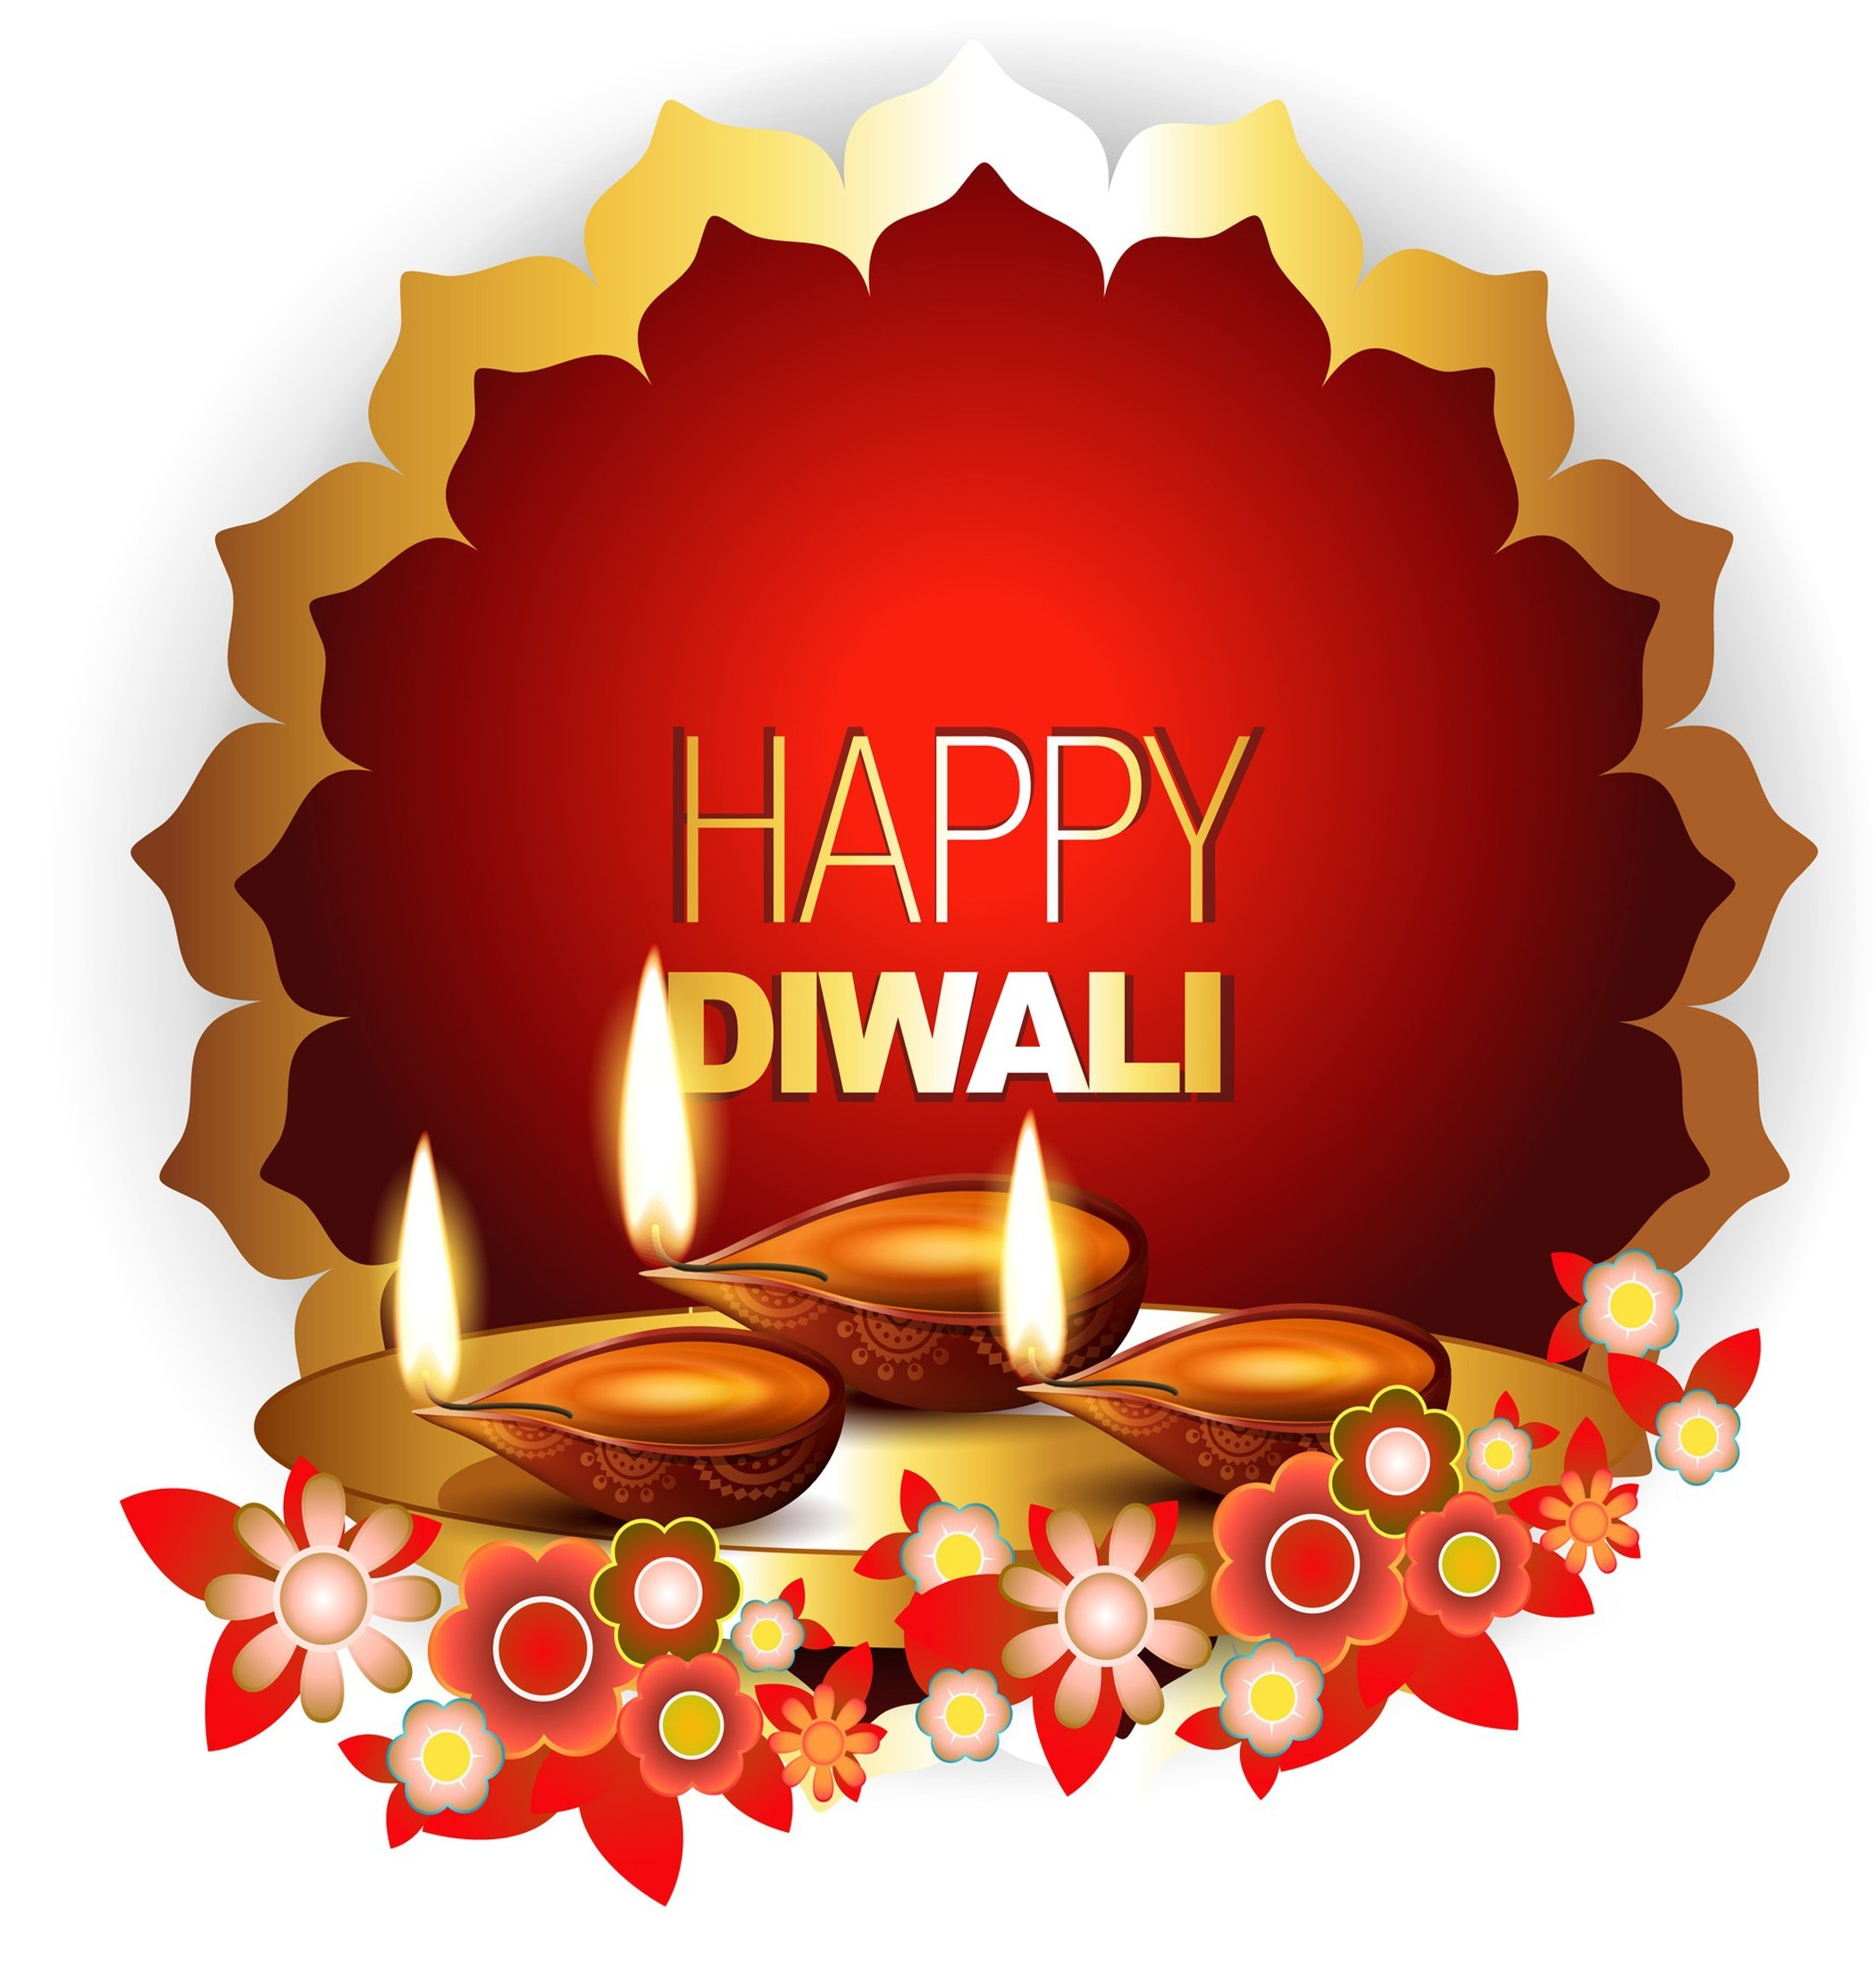 2016 clipart diwali. Happy and new year